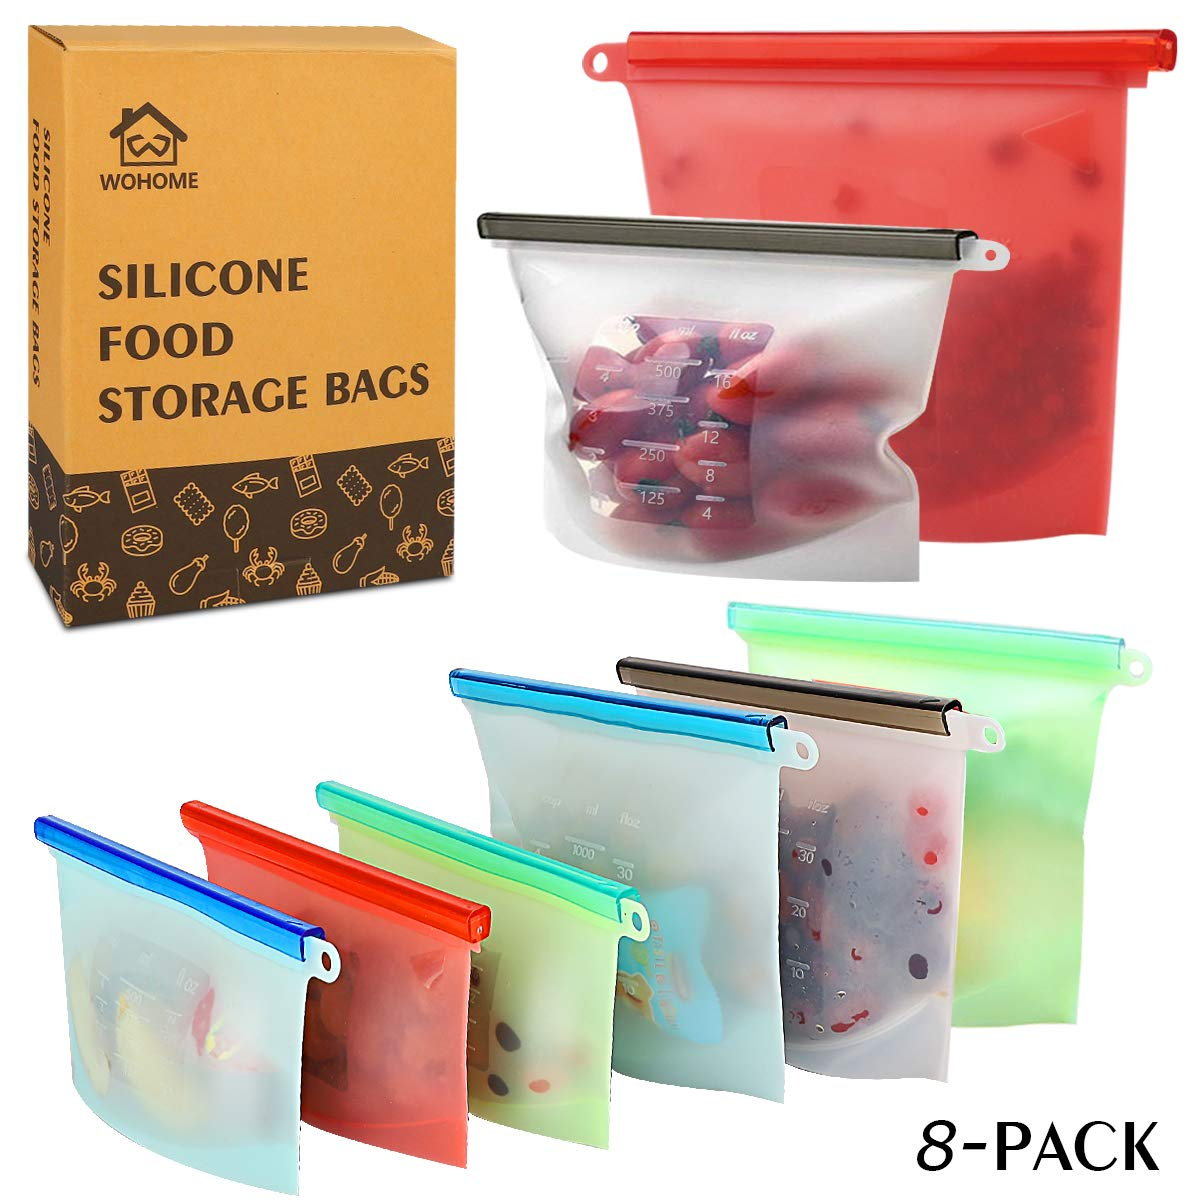 Reusable Silicone Food Storage Bags,WOHOME Freezer Airtight Seal Food Preservation Bags,Food Grade,Versatile Preservation Bag Container for Vegetable,Meat,Fruit,4 Pack Medium 30oz,4 Pack Small 15oz